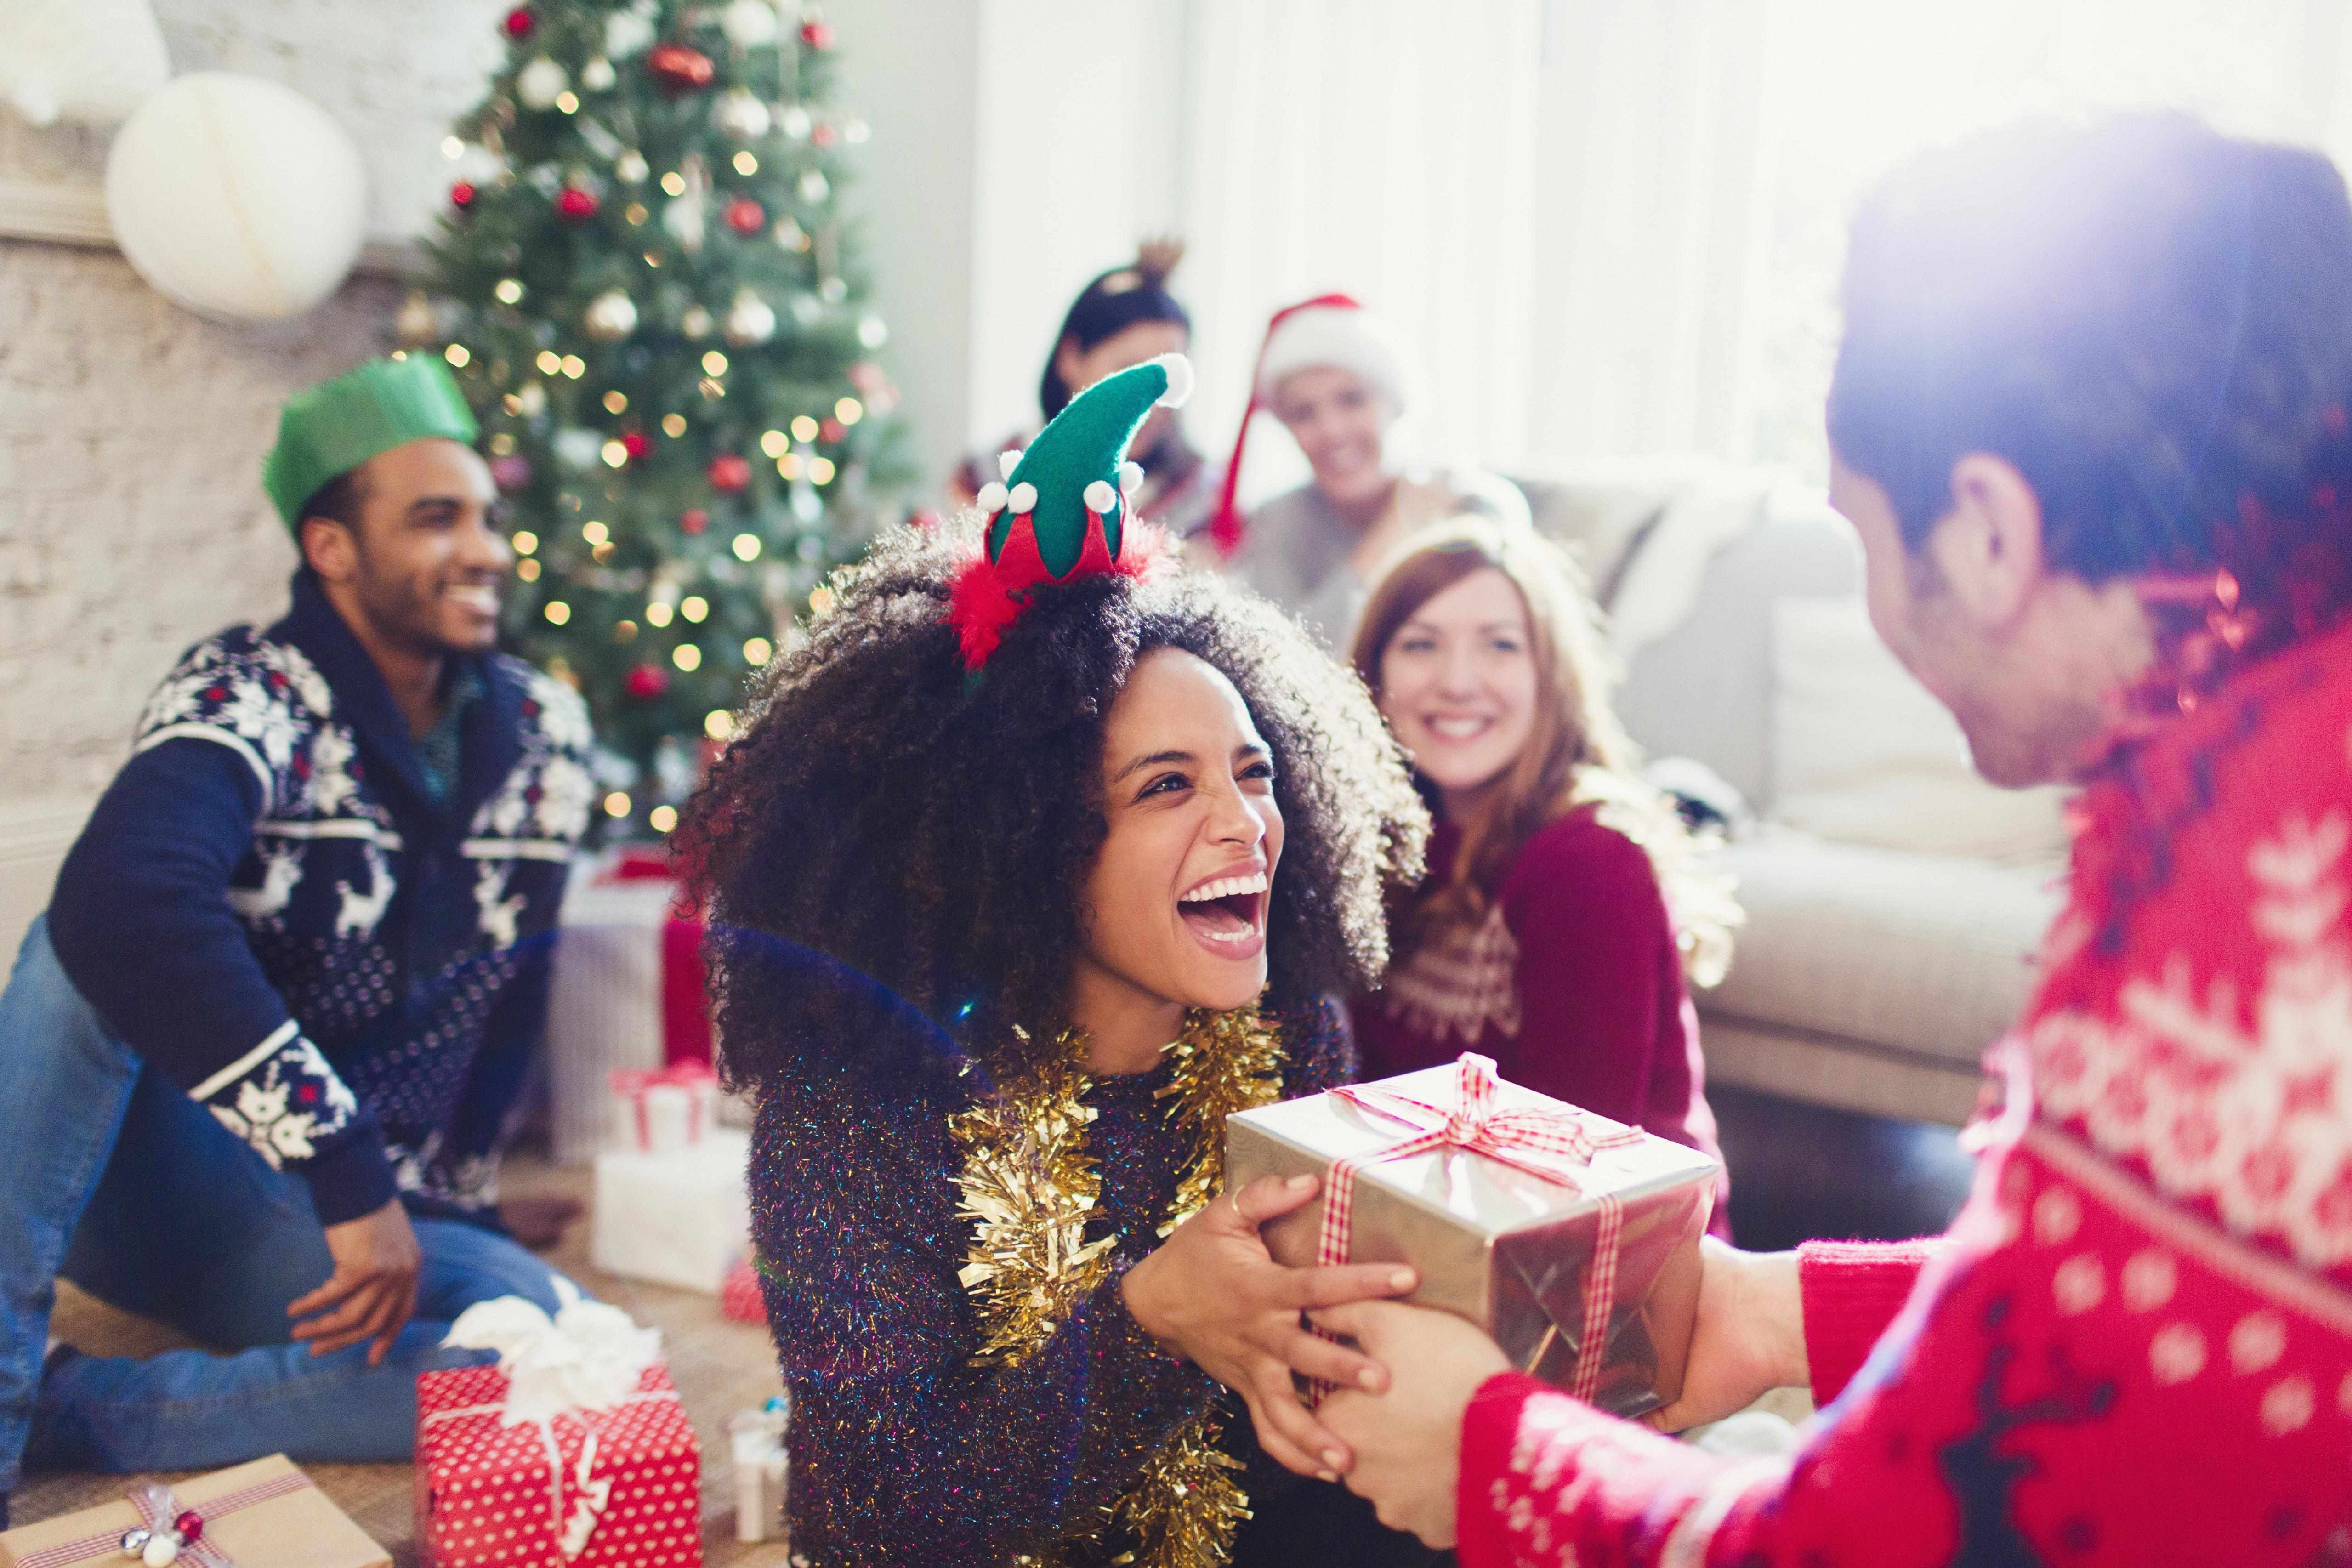 Never regift an unwanted present and stay away from gift vouchers… etiquette expert reveals the dos and don'ts of Christmas presents